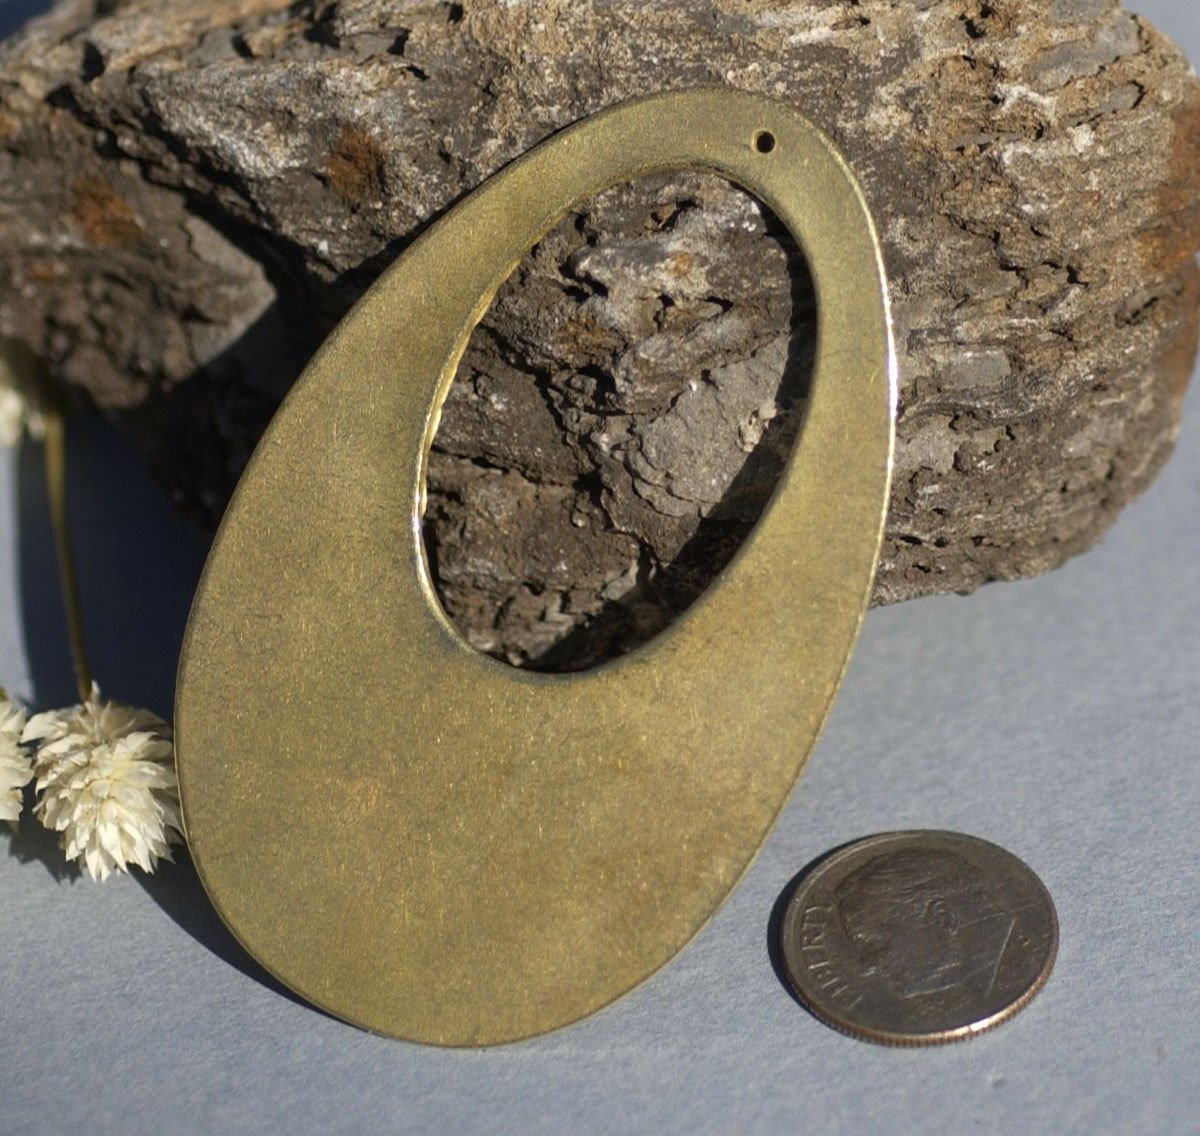 Brass Teardrop 65mm x 41mm Shape with Hole Cutout Blank for Stamping, Metalworking,Texturing, Soldering Blanks